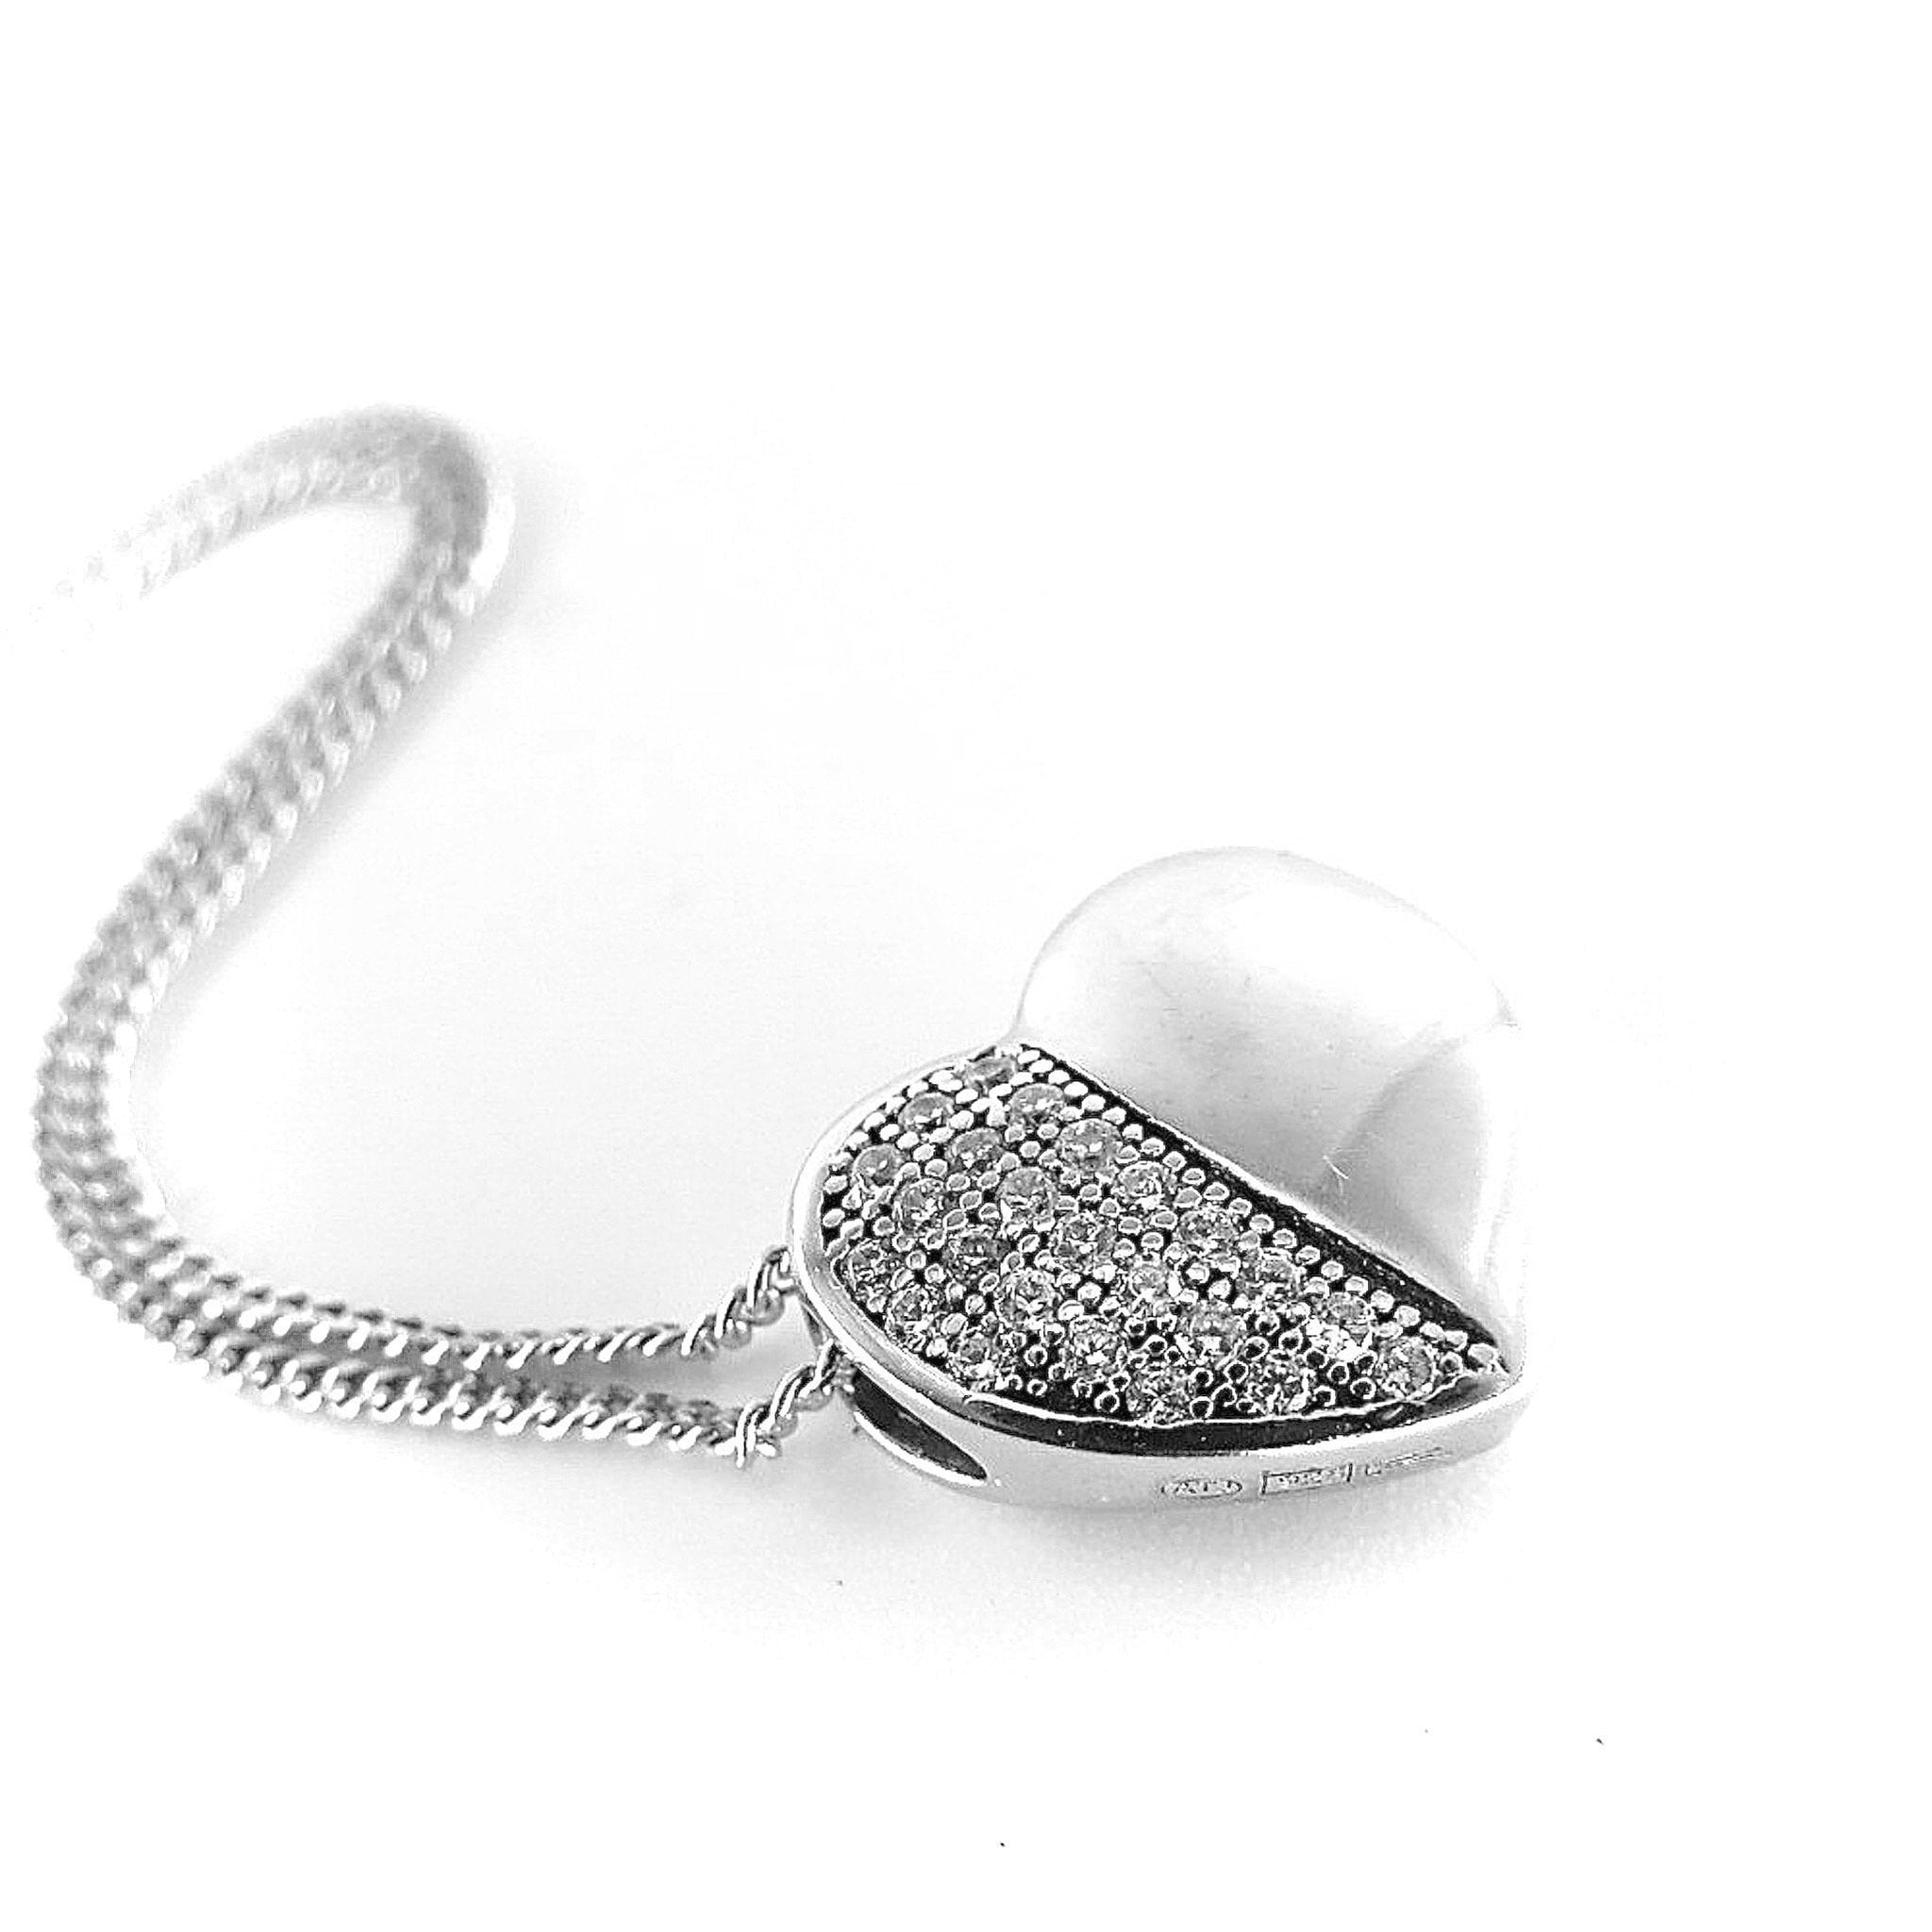 4112a34b1a8cc 925 Sterling Silver Pendant with Cubic Zirconia for a Great Charm, F.I.N.E  Love